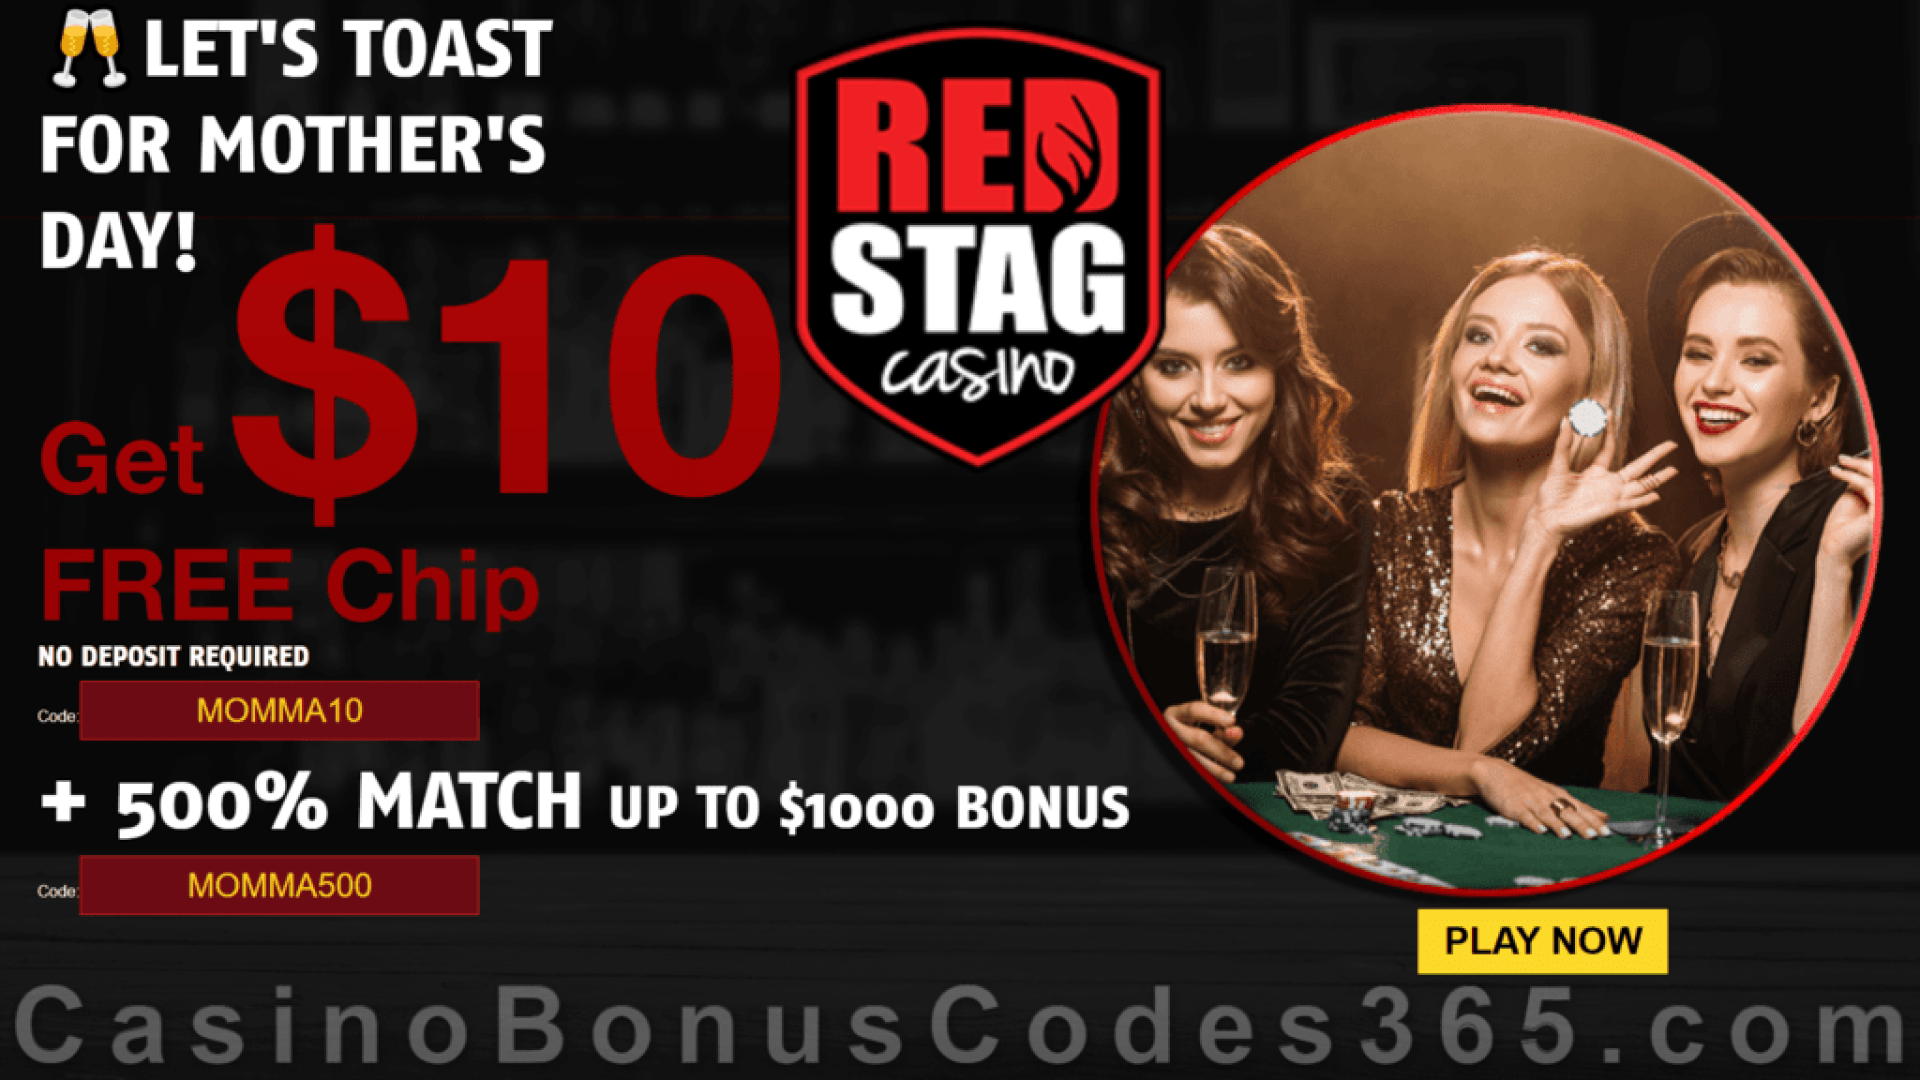 Red Stag Casino $10 FREE Chip plus 500% Match Bonus Super Mother's Day 2021 Deal